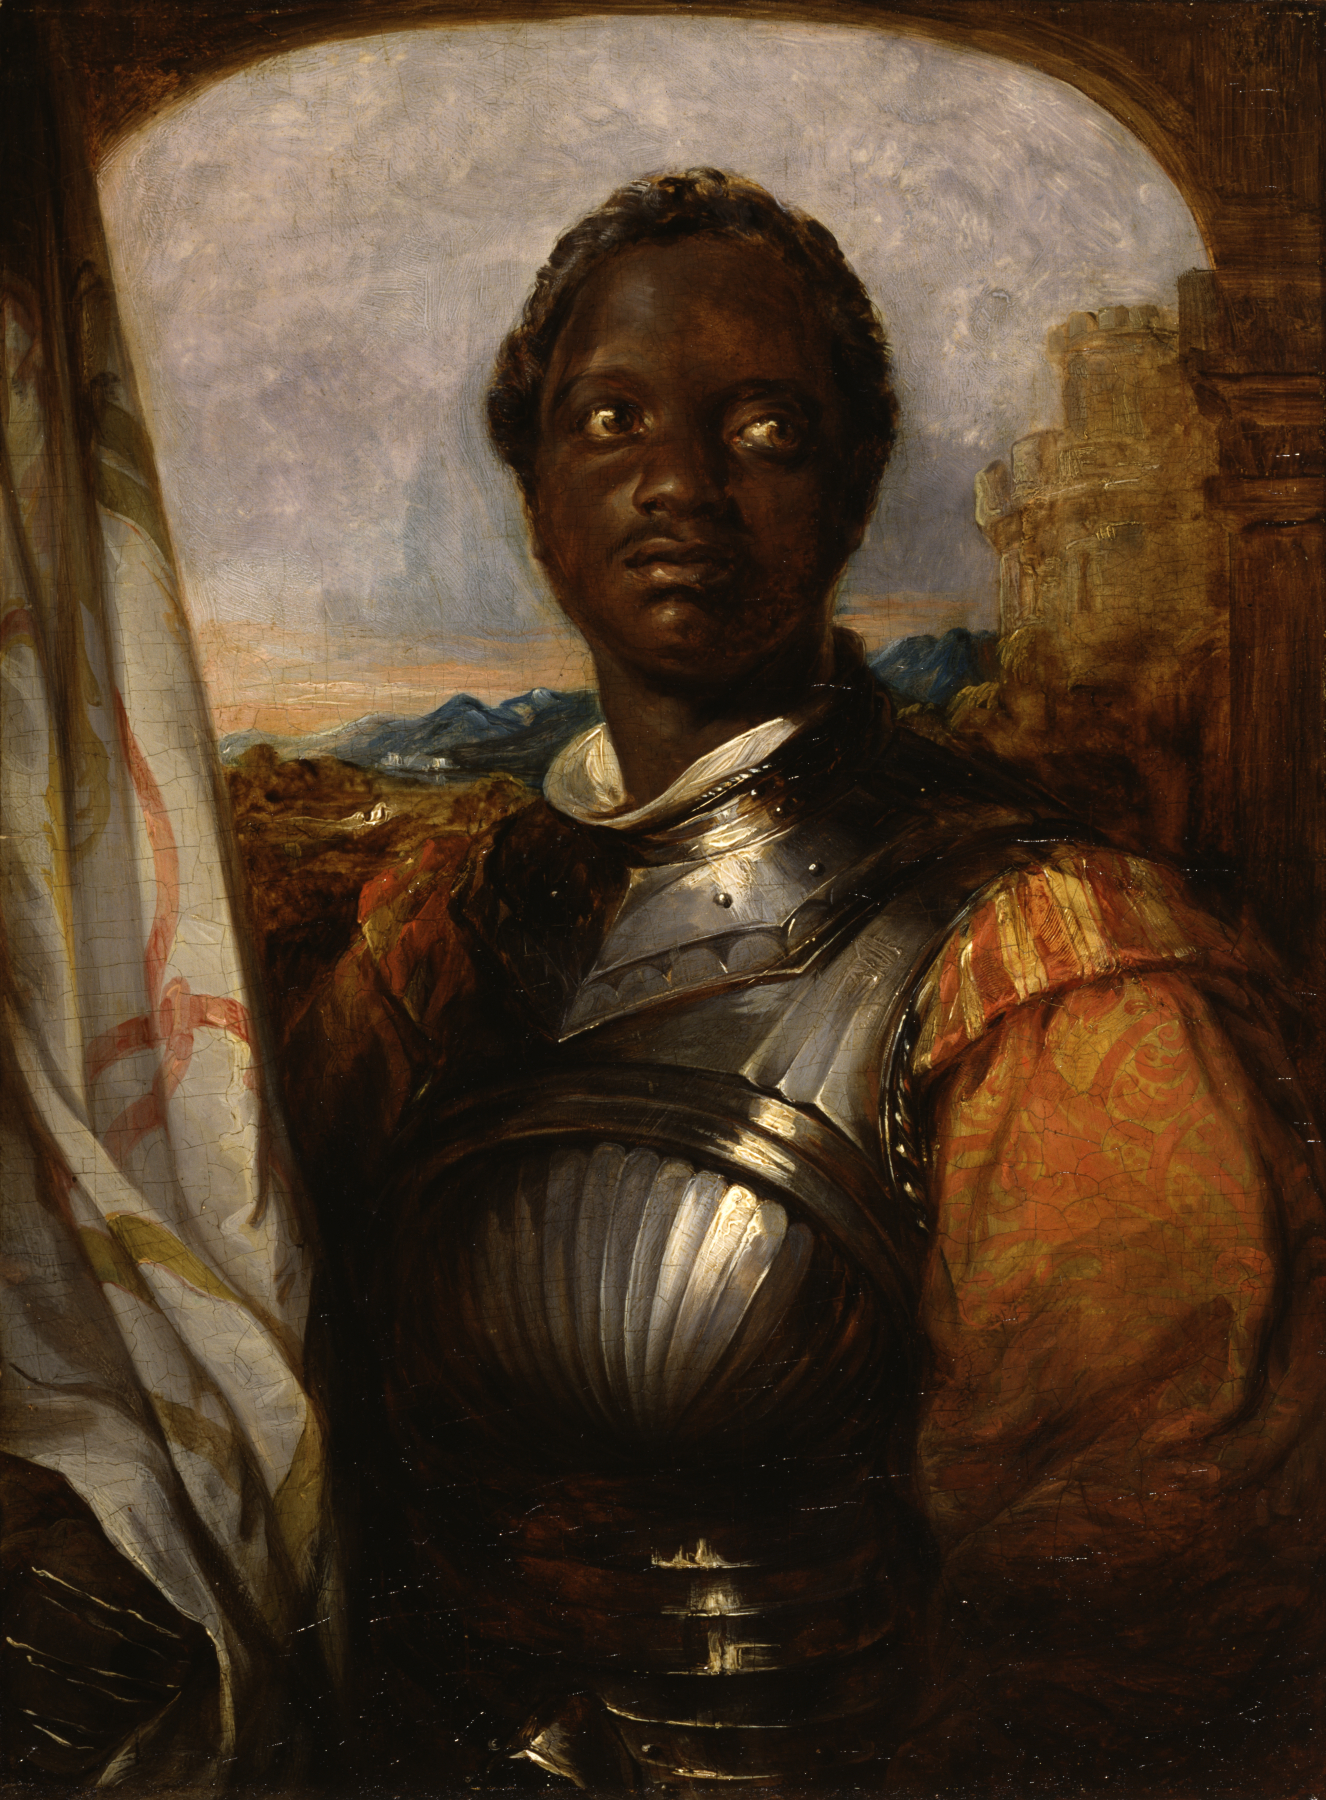 <b>Ira Aldridge</b>     	</br>Oil painting of Ira Aldridge, possibly in the role of Othello, early to mid-19th century</br><br/><b>Source: </b><i>Ira Aldridge, possibly in the role of Othello by William Mulready, owned by the Walters Art Museum, Gift of the Honorable Francis D. Murnaghan, Jr., 1987. Available under a Creative Commons Attribution-Share Alike 3.0 Unported License at http://art.thewalters.org/detail/9022/ira-aldridge-possibly-in-the-role-of-othello/</i>